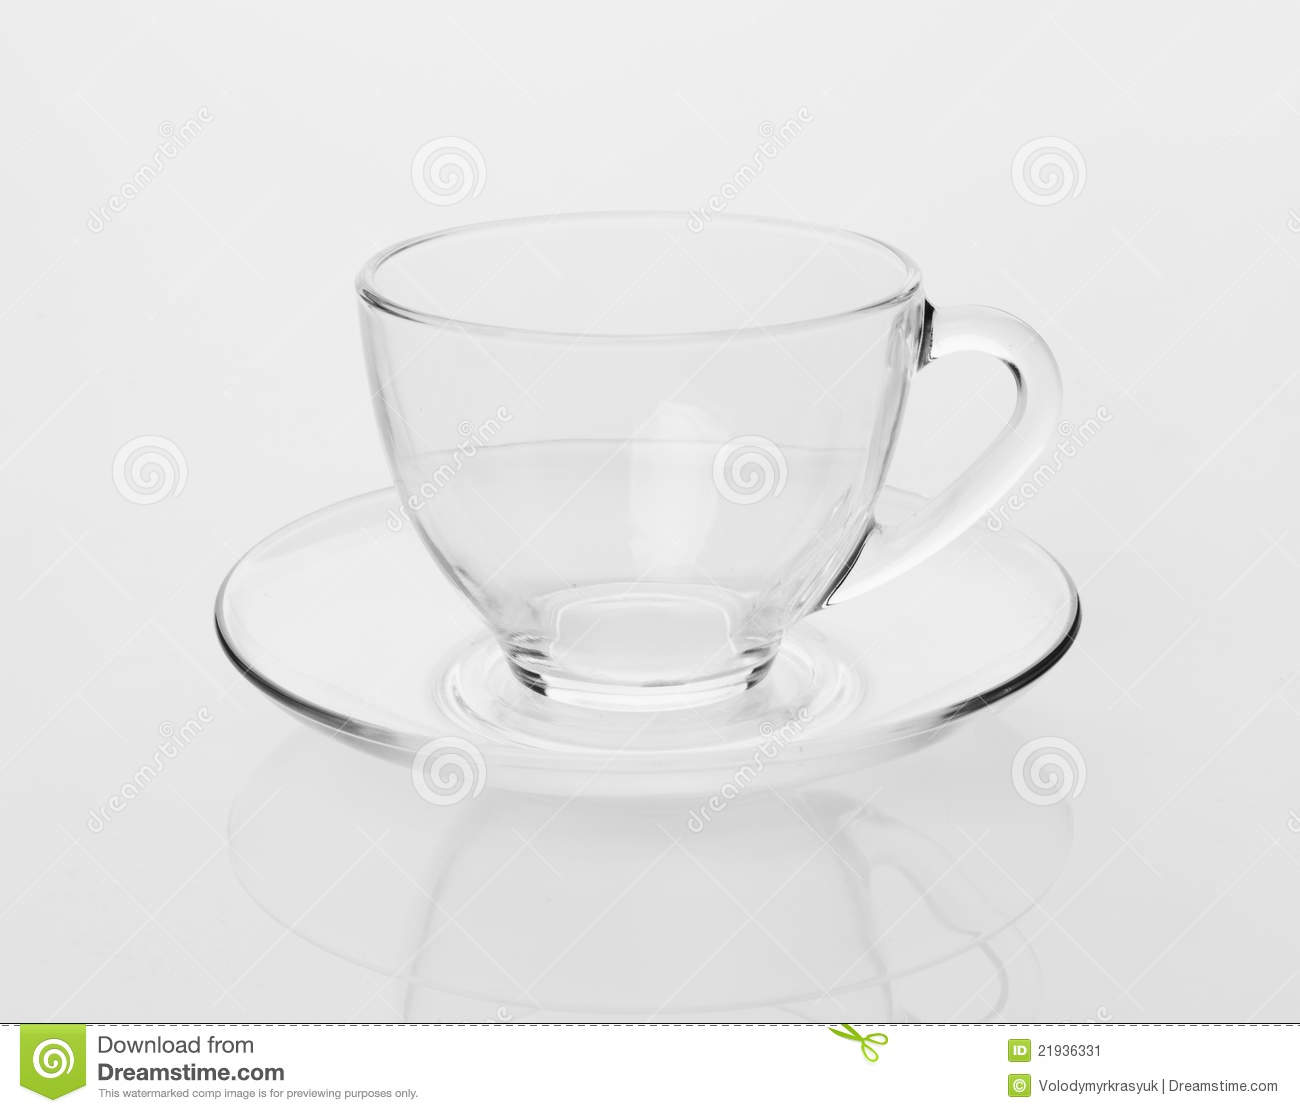 Empty Tea Cup And Saucer Stock Image - Image: 21936331